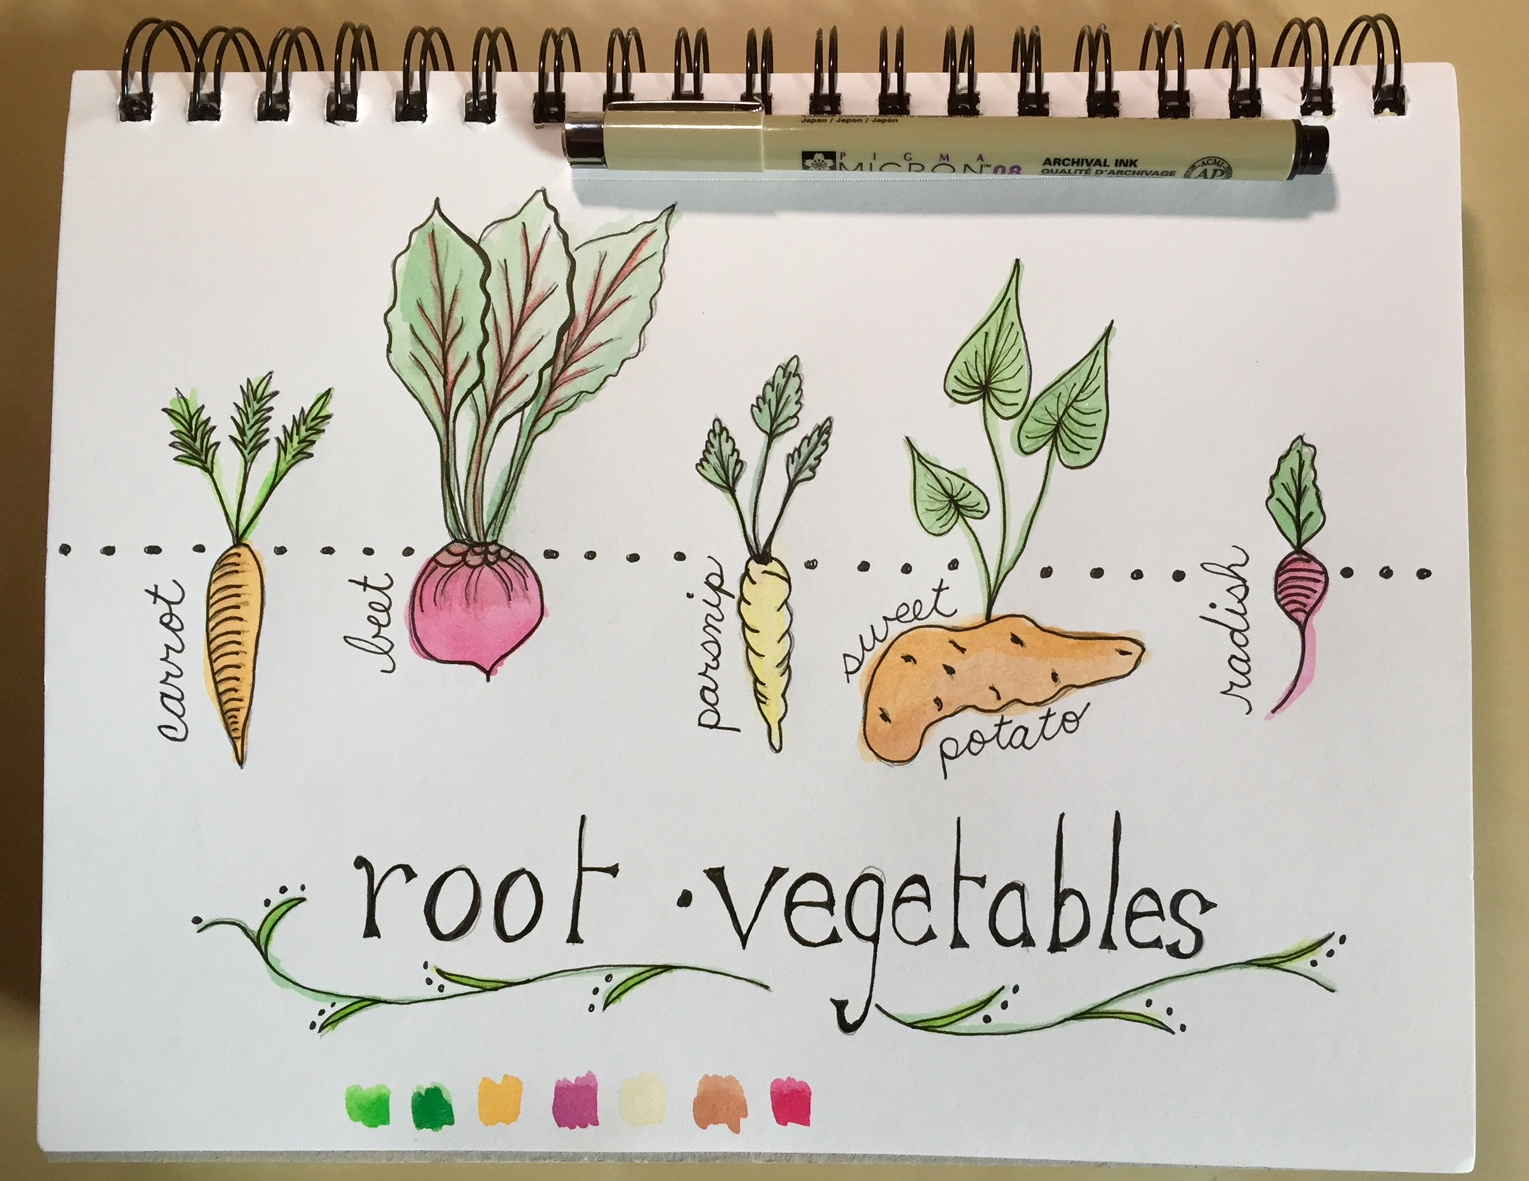 Drawn vegetable root vegetable Vegetables root Terri's vegetables sketchbook